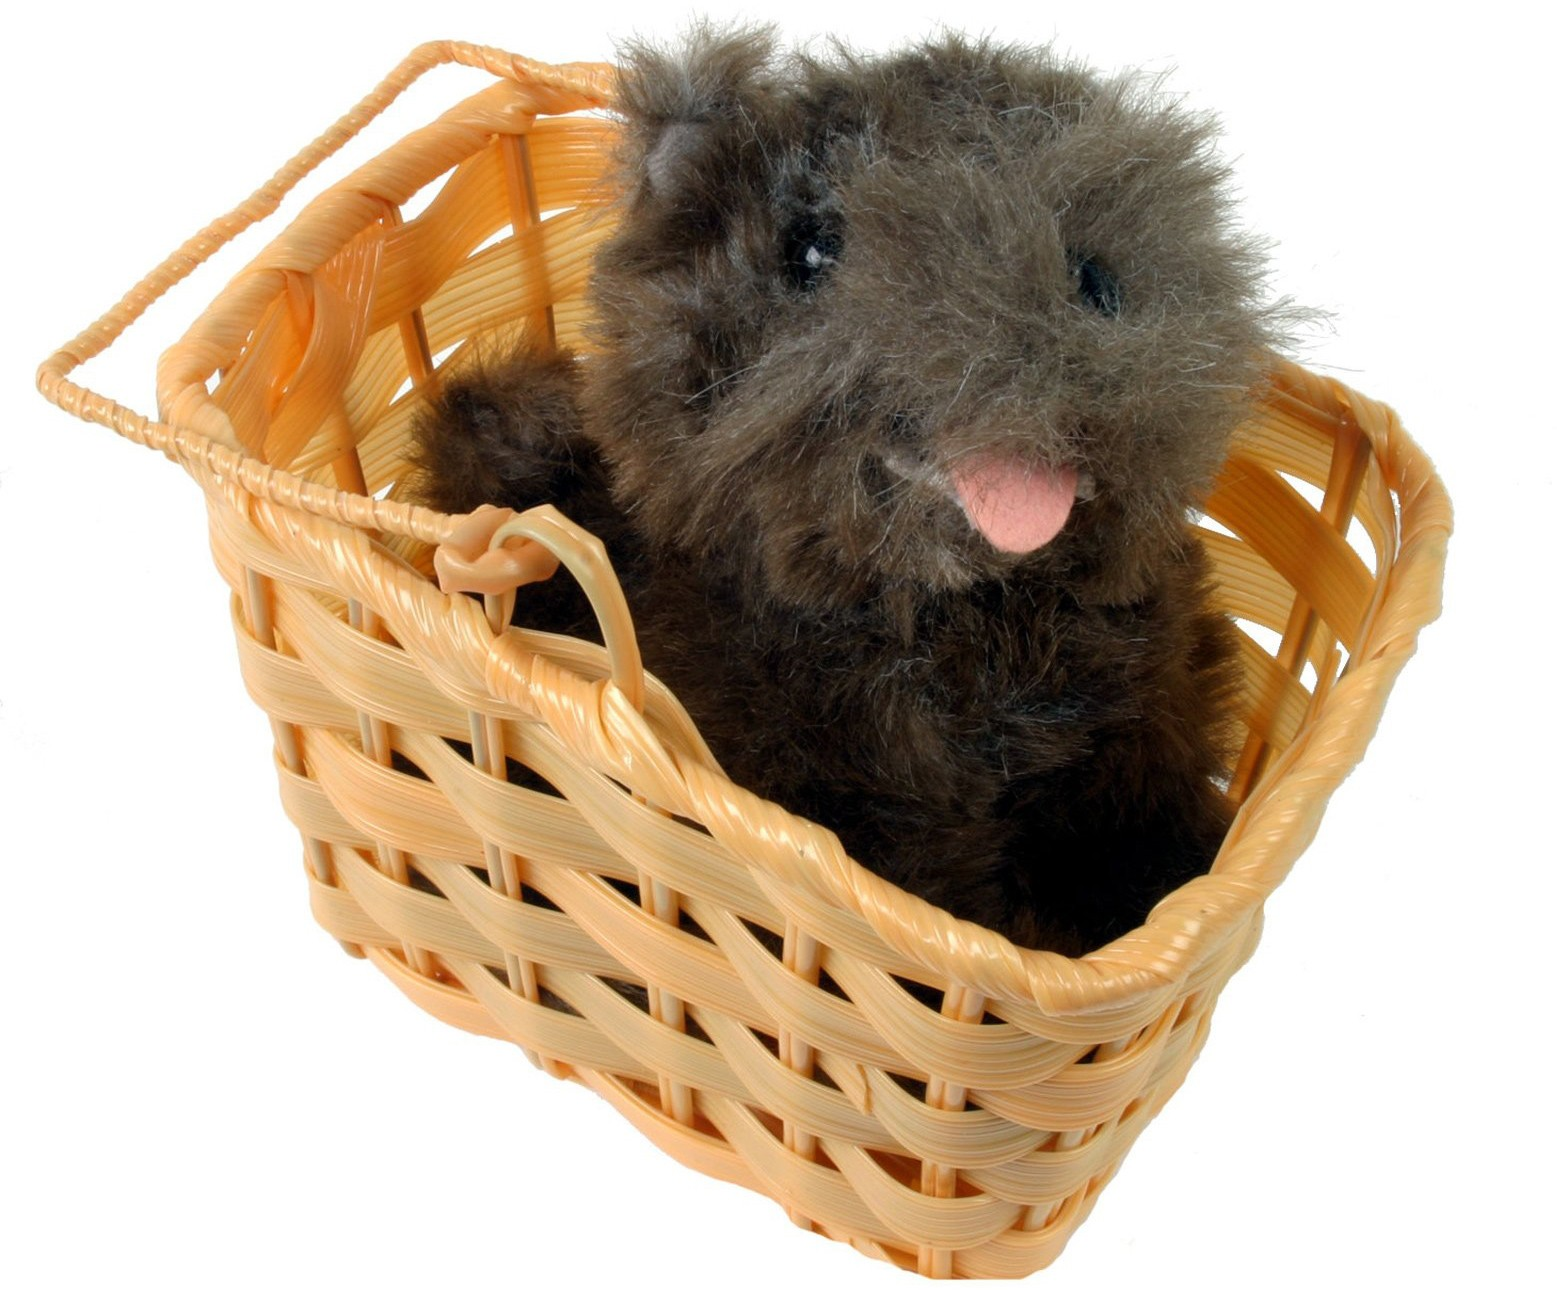 Wizard Of Oz - Dorothyu0027s Toto Dog In Basket Adult Costume Prop.jpg  sc 1 st  Costumes.com.au & Wizard Of Oz - Dorothyu0027s Toto Dog In Basket Adult Costume Prop ...